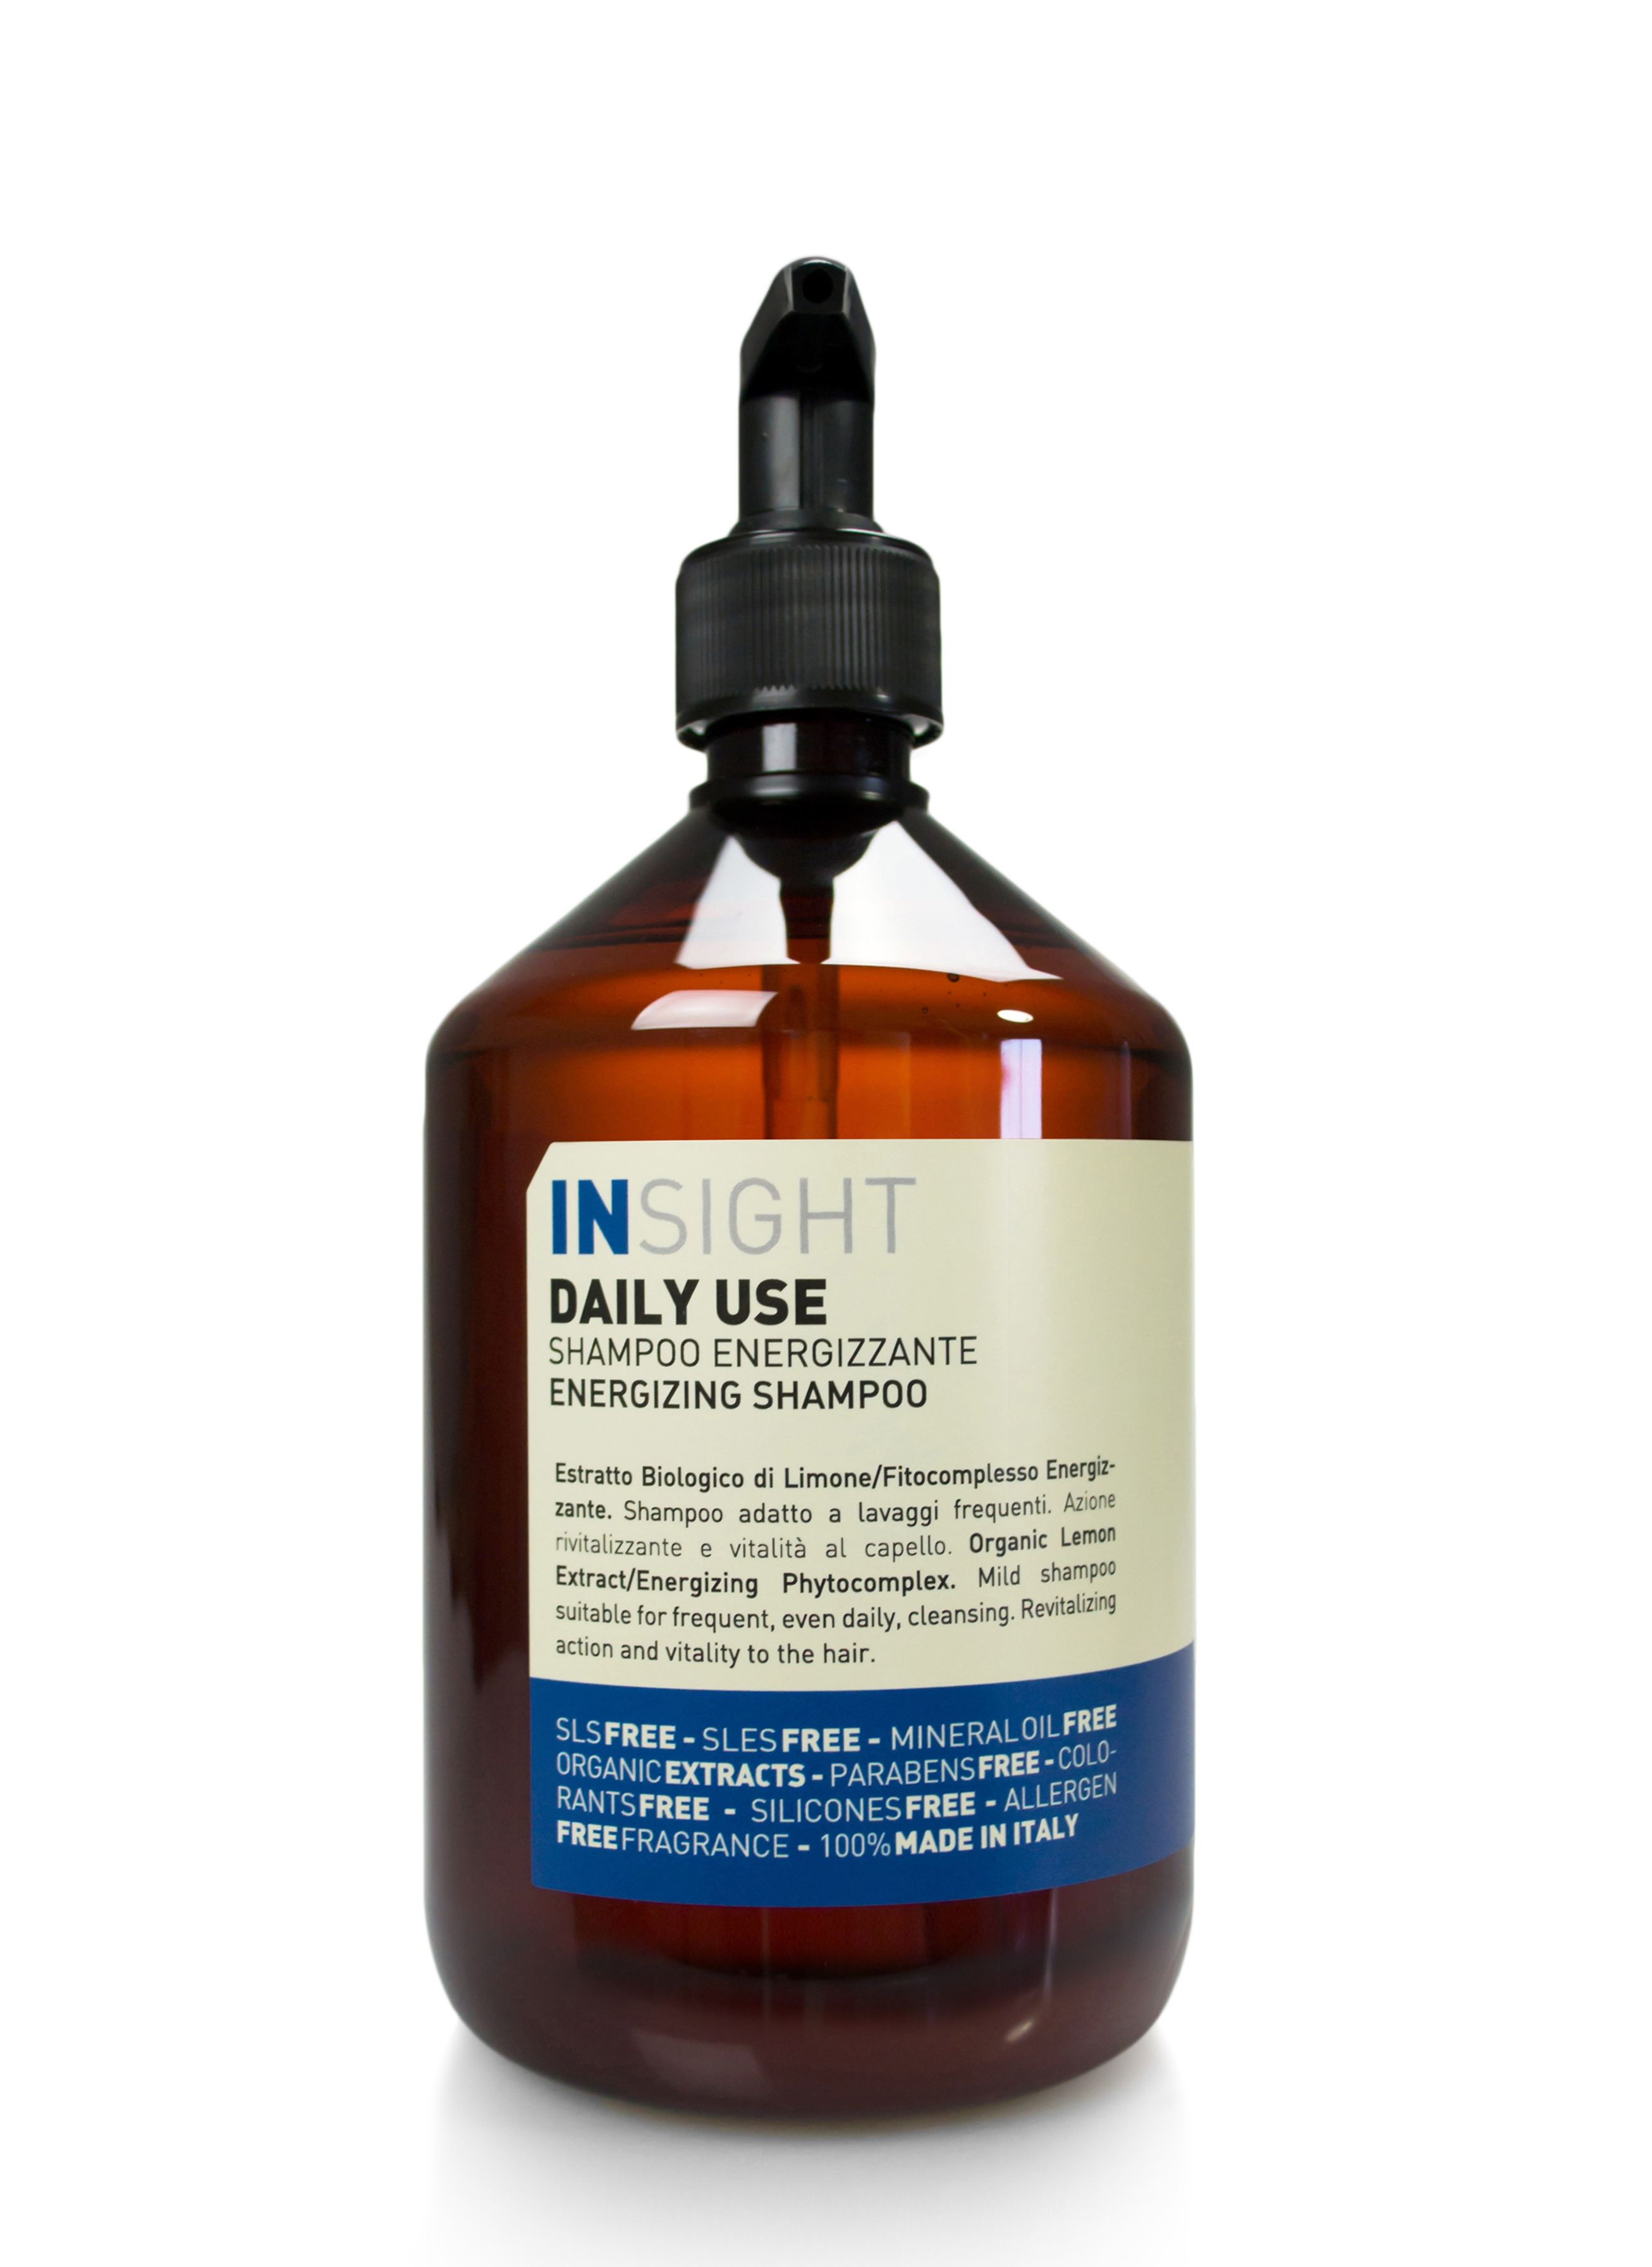 DAILY USE ENERGIZING SHAMPOO